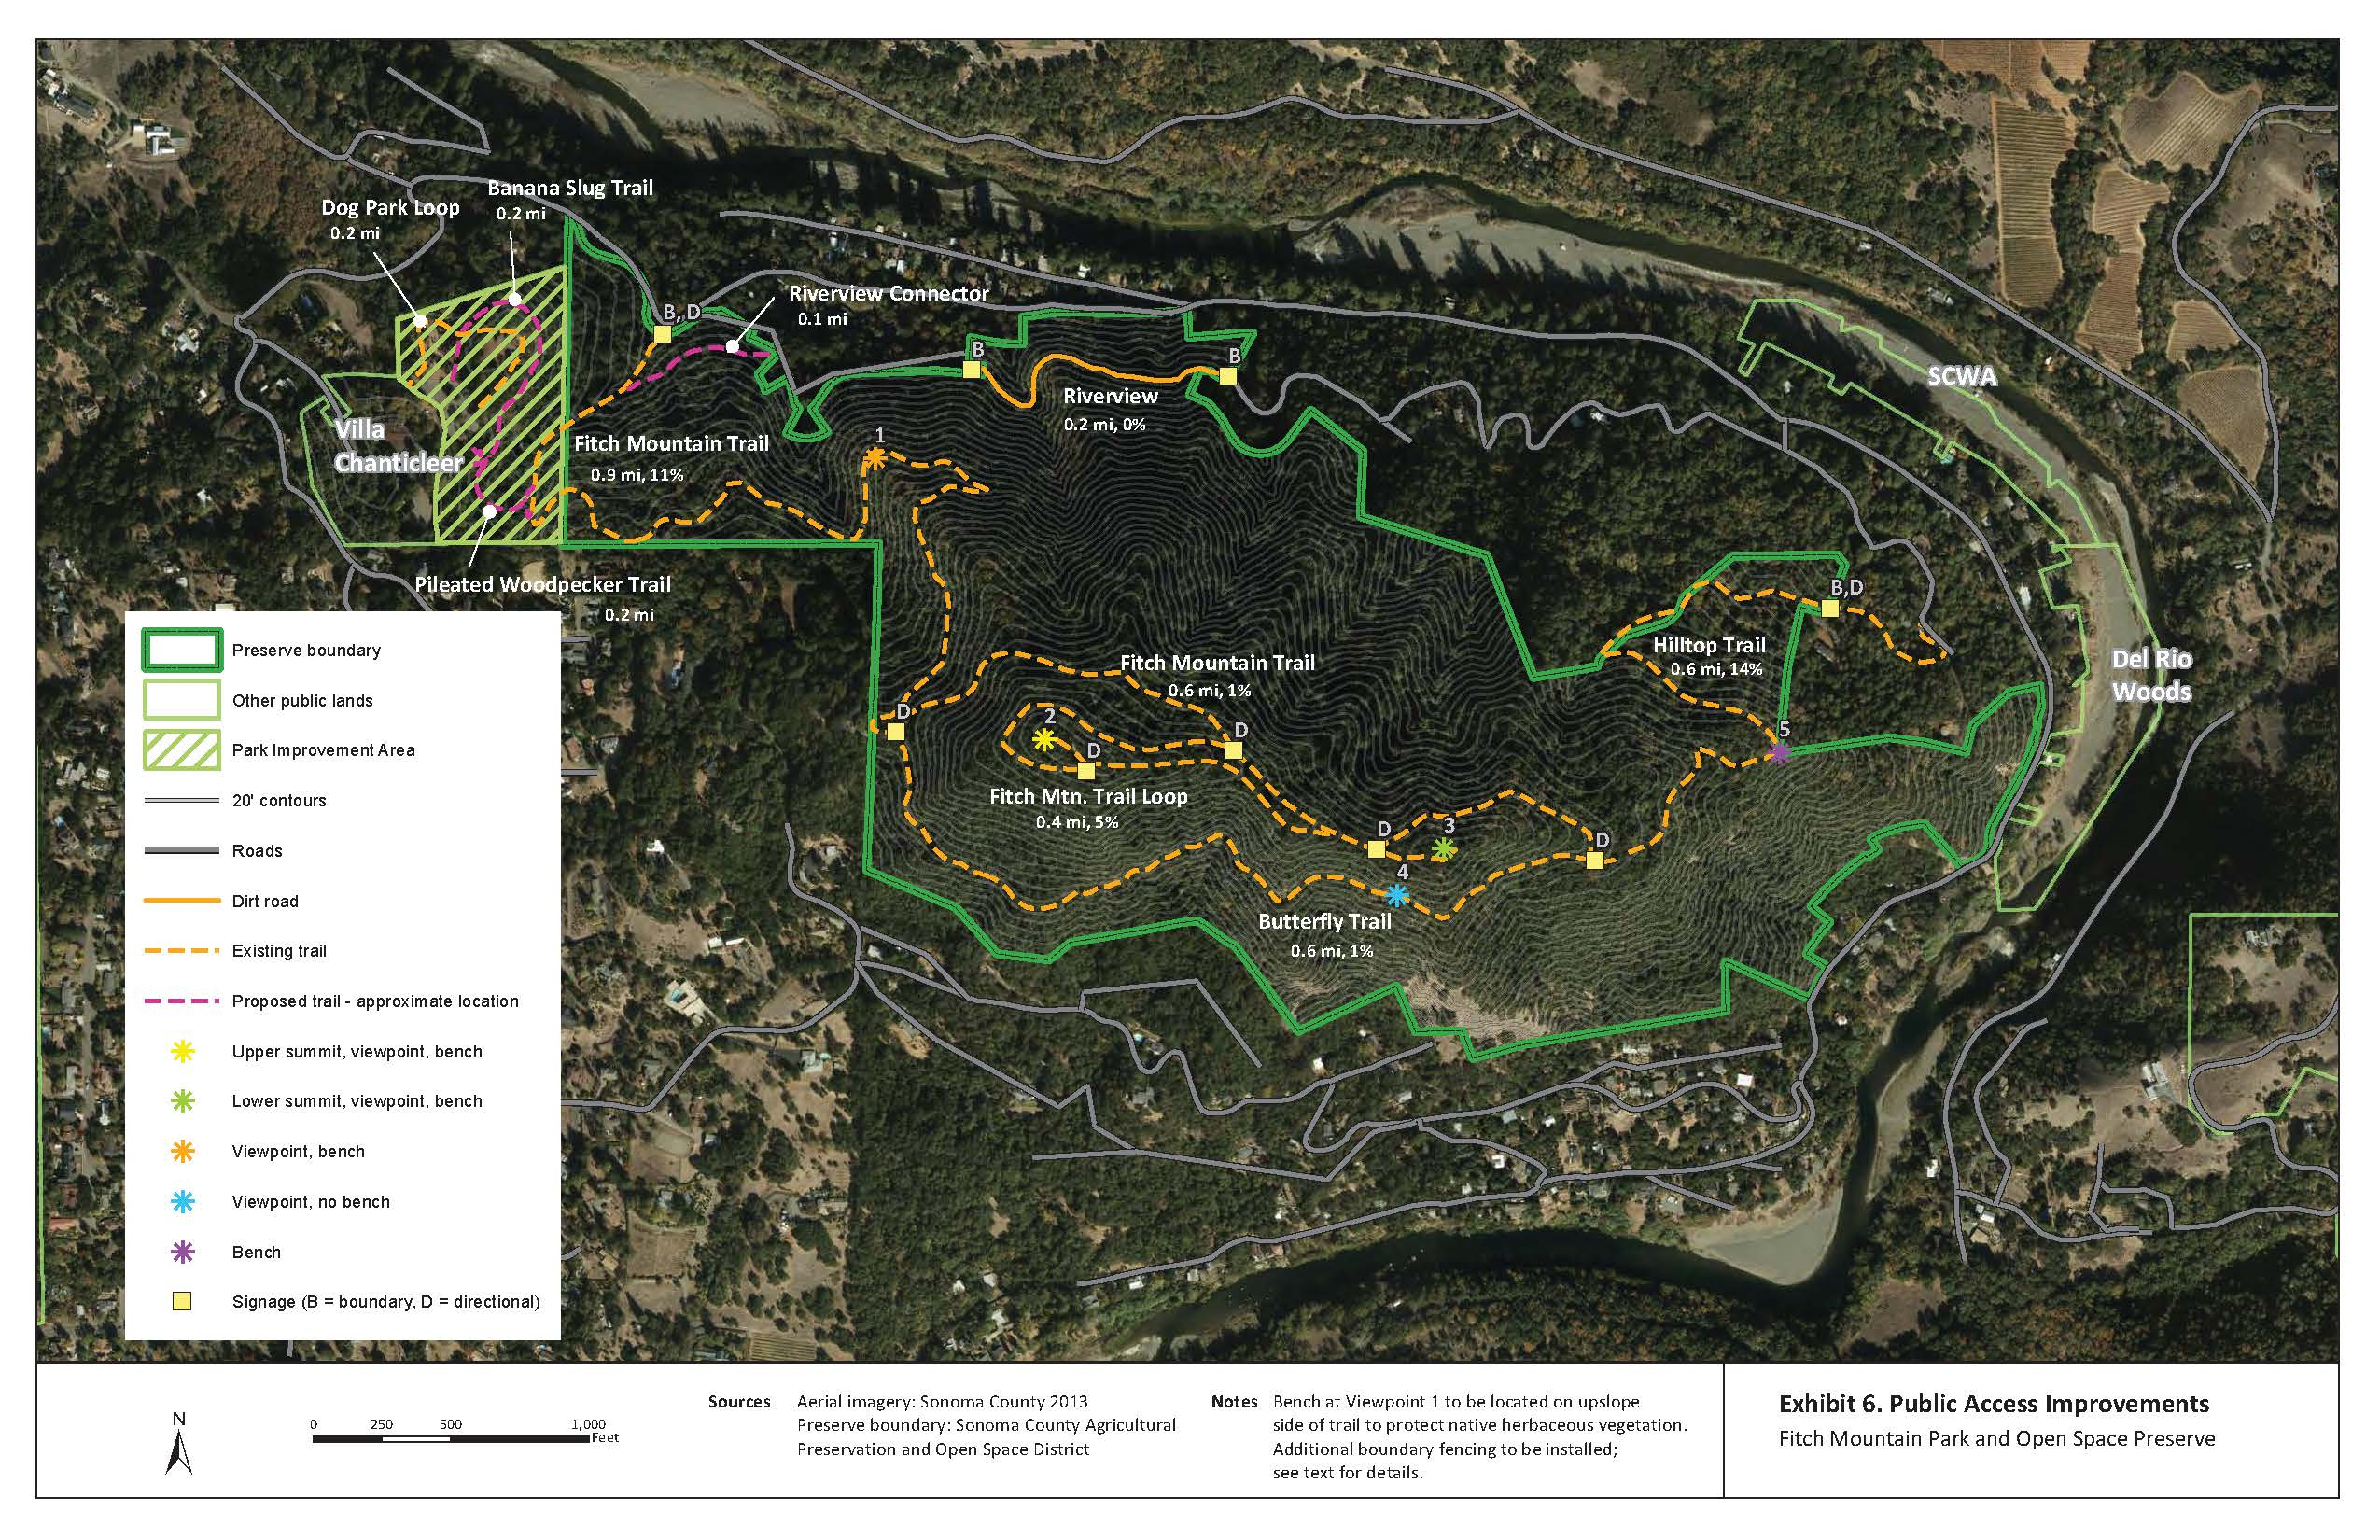 Fitch Mountain Trail Map Opens in new window